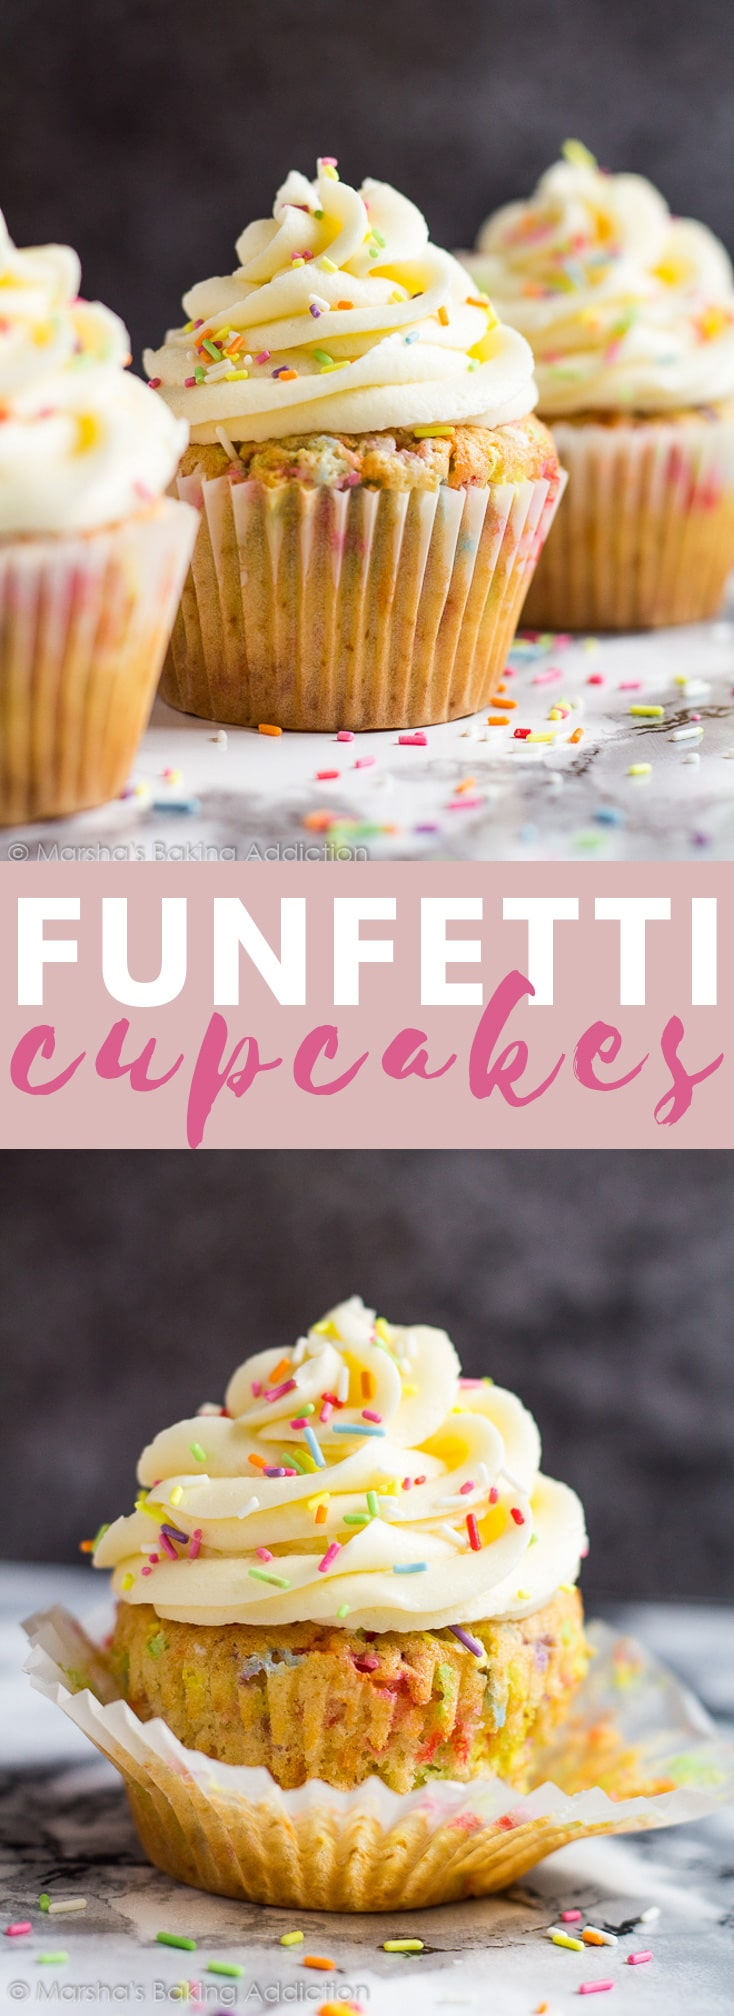 Funfetti Cupcakes - Deliciously moist and fluffy vanilla cupcakes loaded with rainbow sprinkles and topped with sweet vanilla buttercream frosting! #funfetti #cupcakes #cupcakerecipes